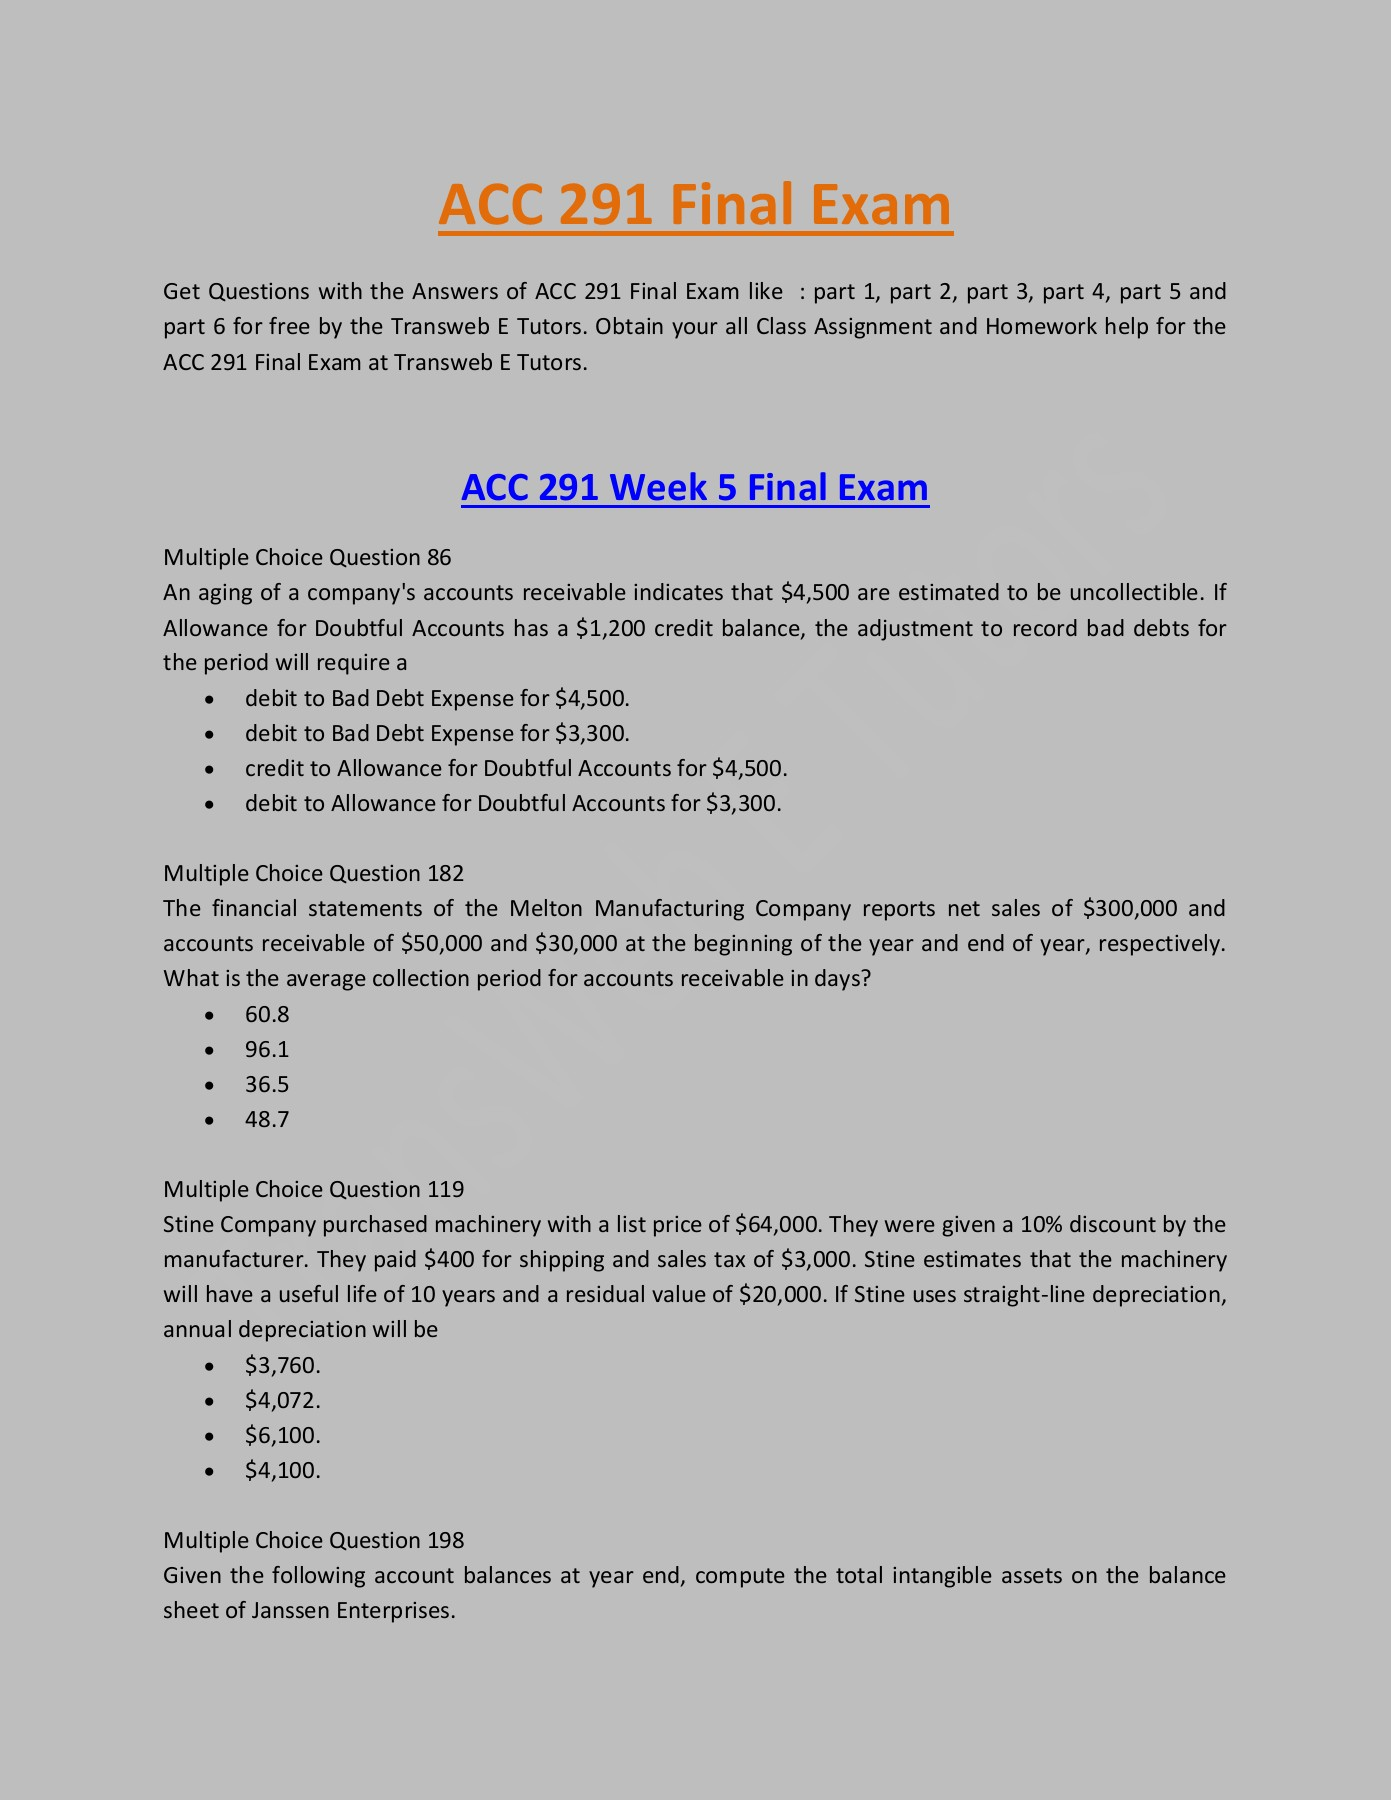 ACC 291 Final Exam - Questions & Answers : Part 1, 2, 3, 4